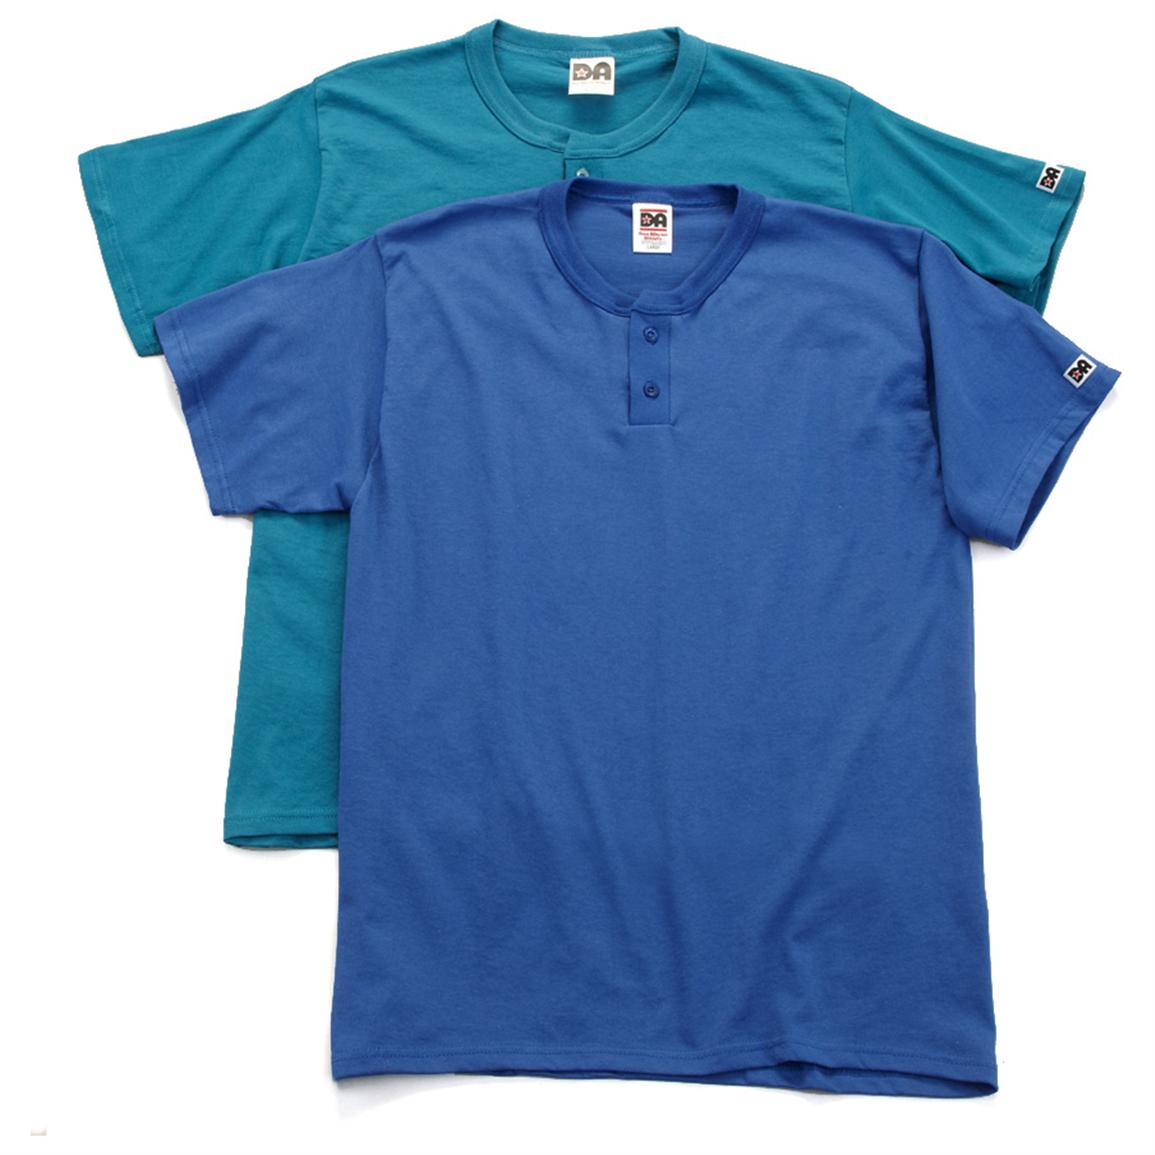 2-Pk. of Don Alleson™ Short-sleeved Henleys, 1 Light Blue / 1 Royal